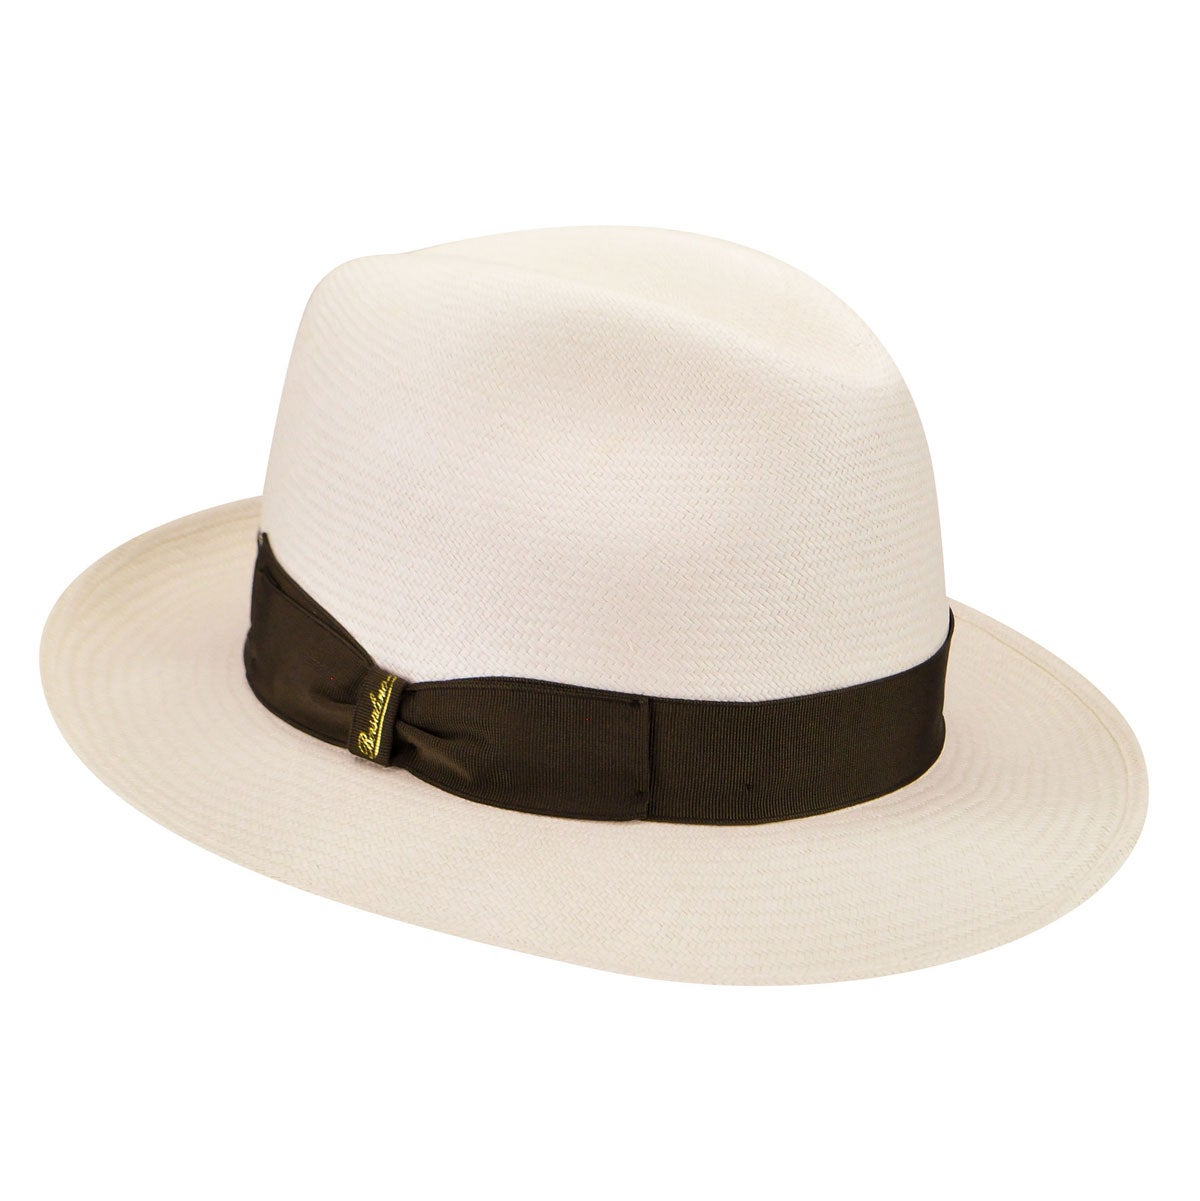 1940s Style Mens Hats 231991 Tesa Media Fine Panama Fedora $355.00 AT vintagedancer.com